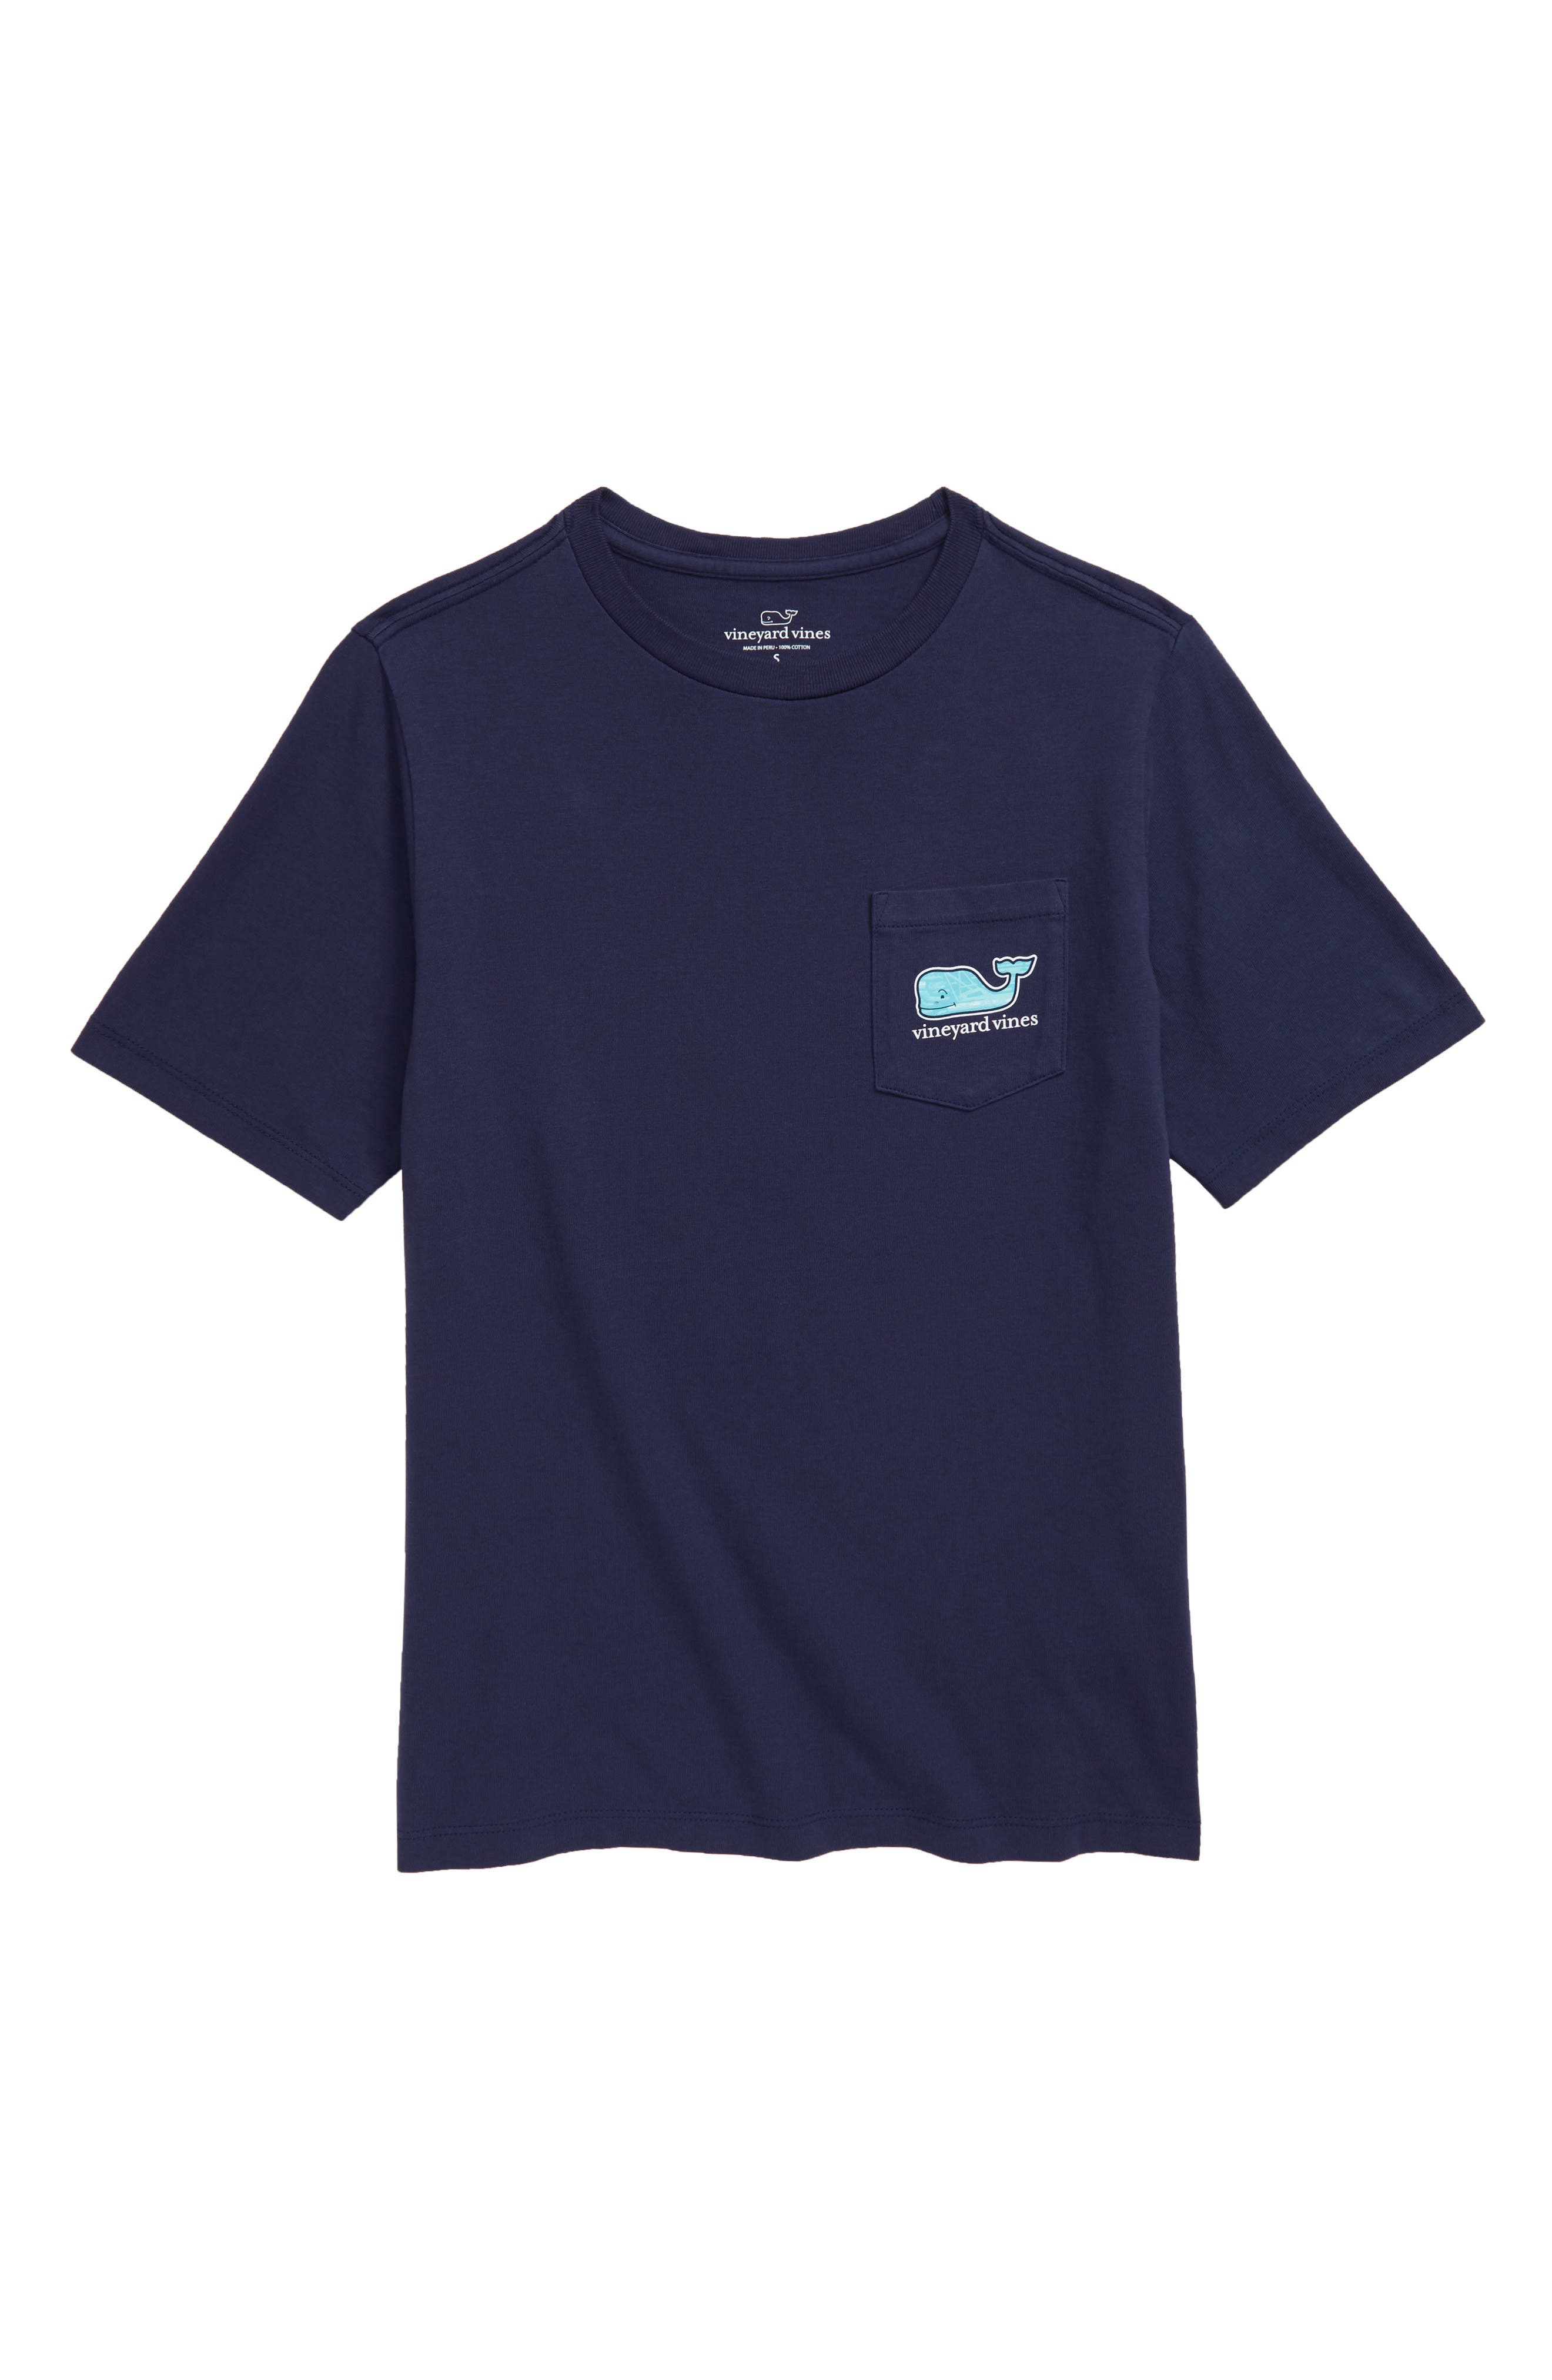 Toddler Boys Vineyard Vines Summer Sailing Whale TShirt Size 4T  Blue